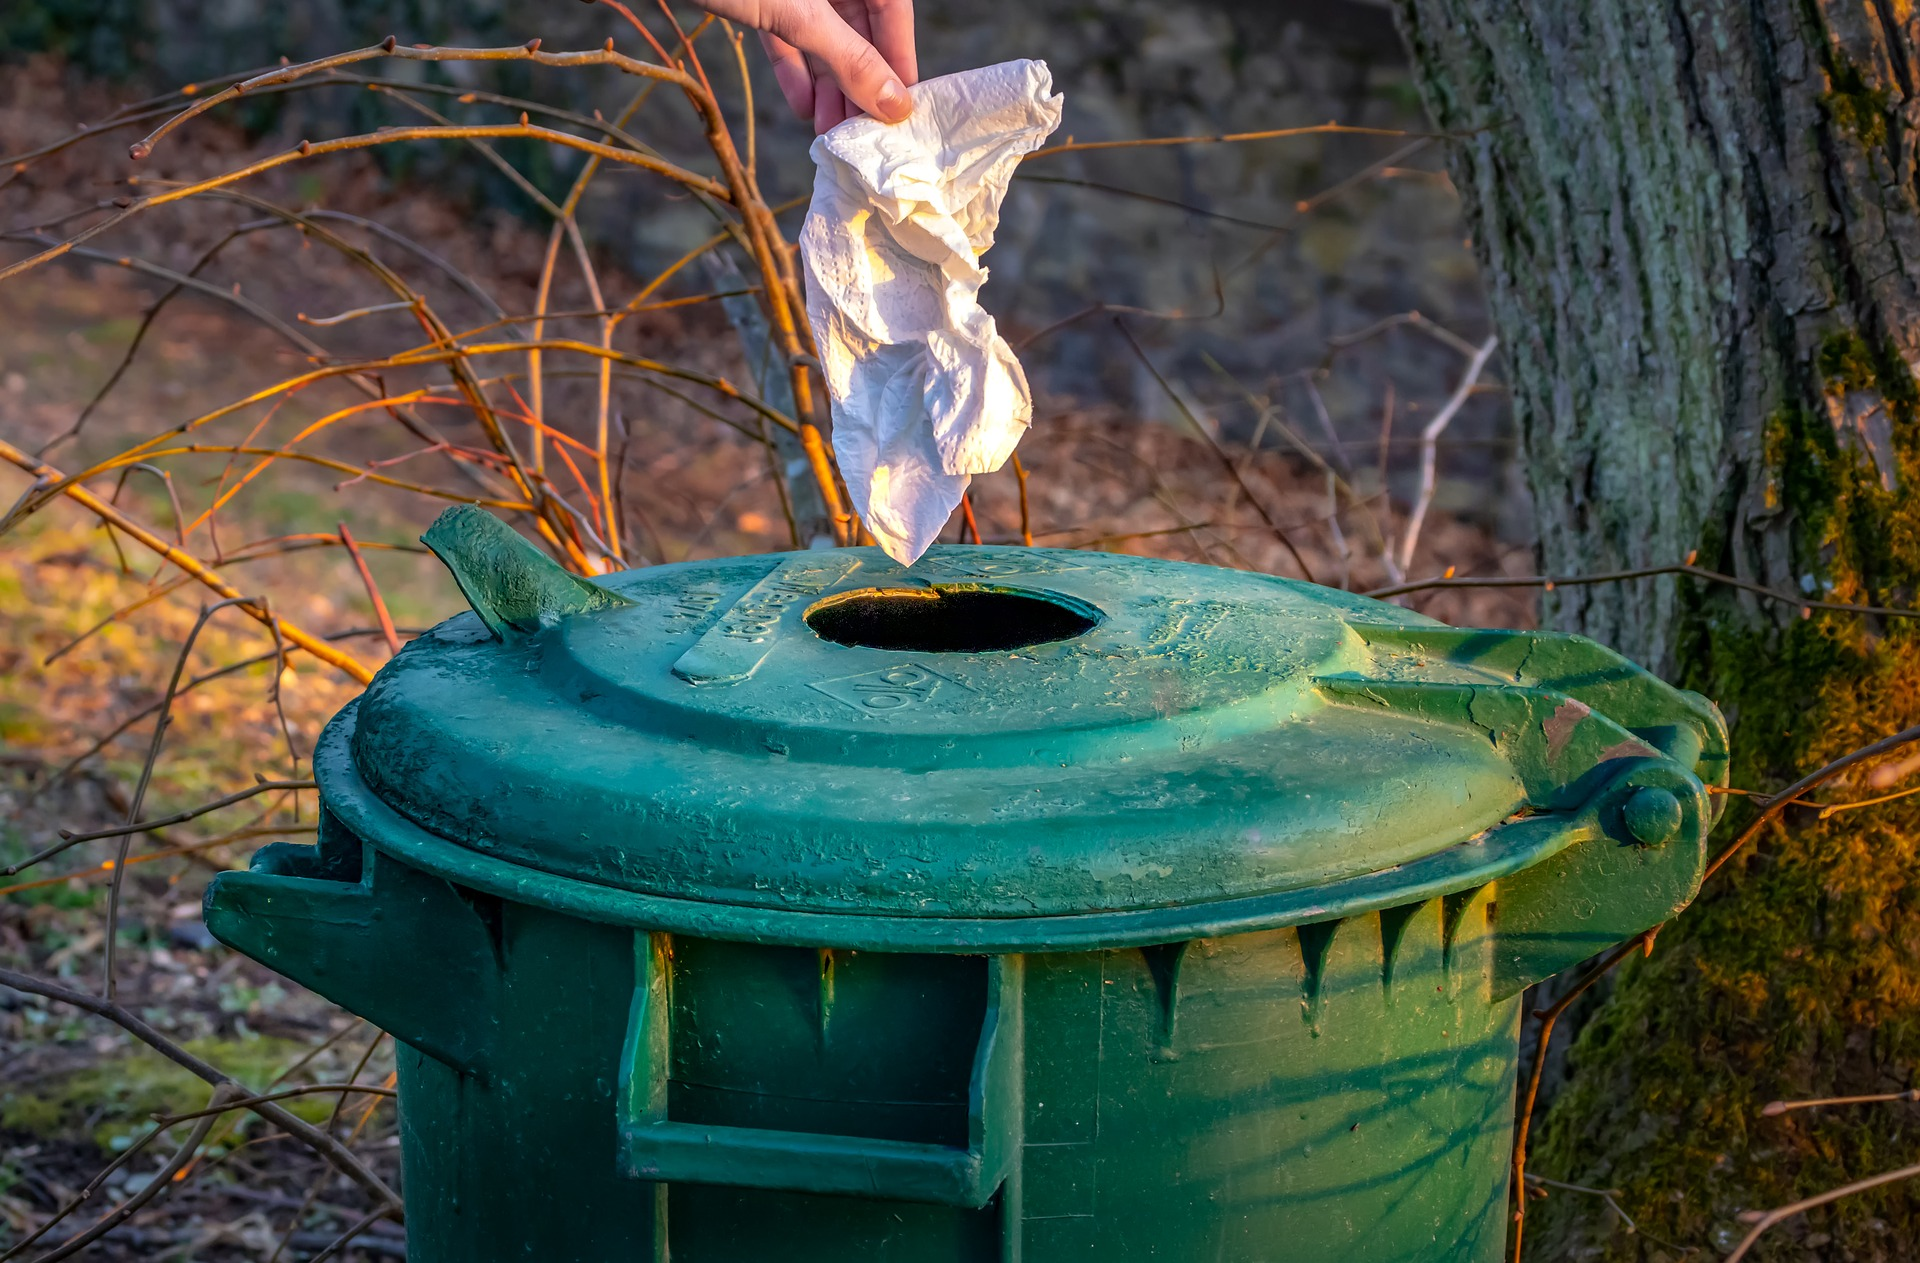 A Comprehensive Guide On Commercial Waste